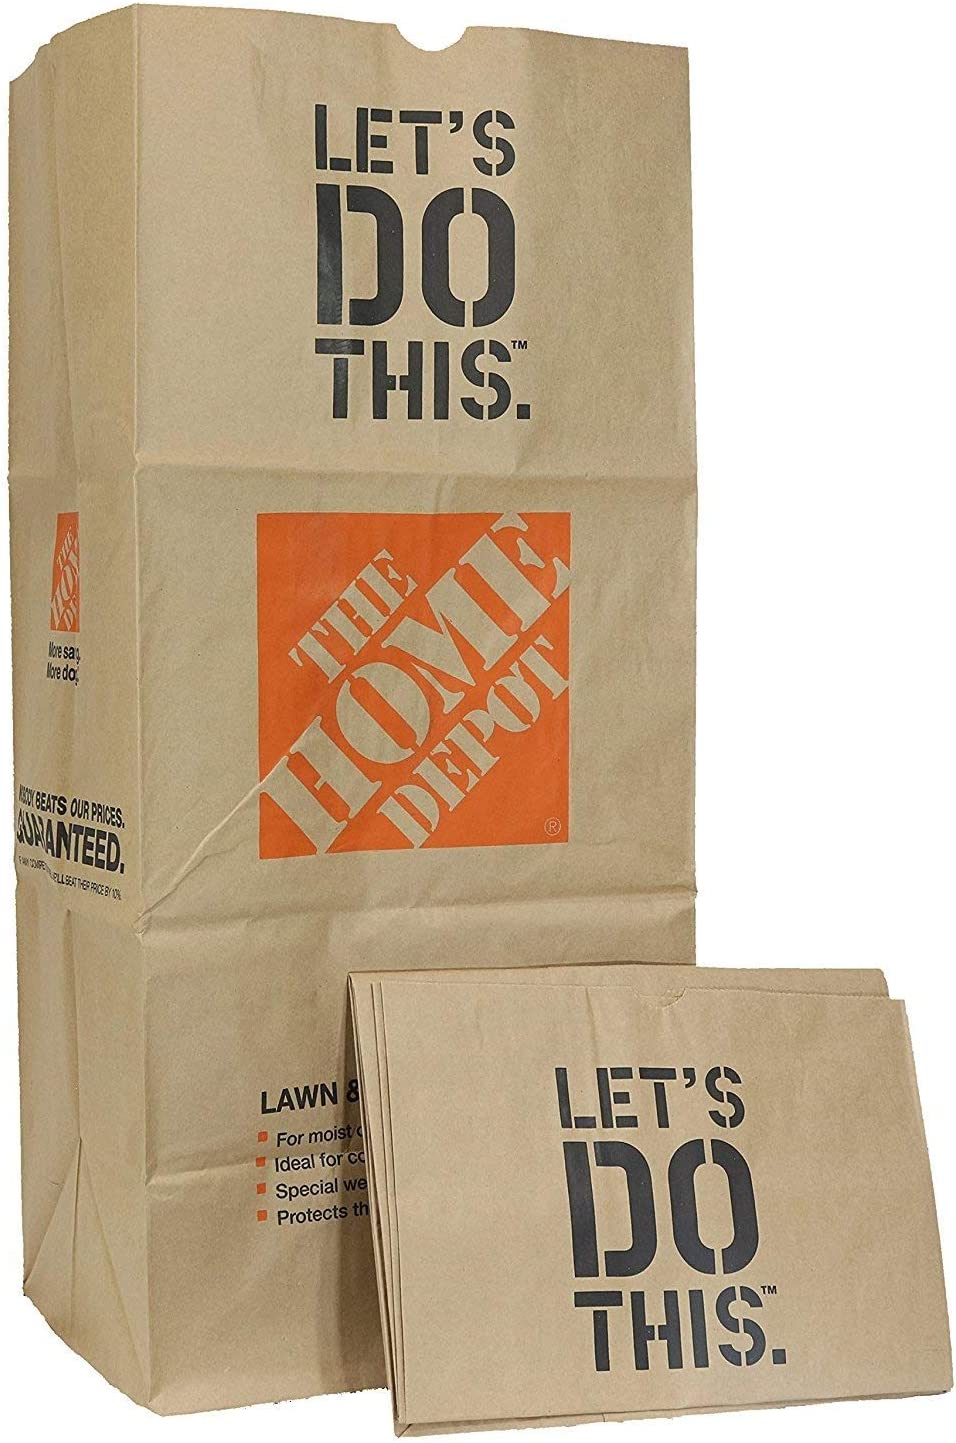 The Home Depot Heavy Duty Brown Paper Lawn and Refuse Bags for Home and Garden, 30 gal (1 Pack of 5 Bags)